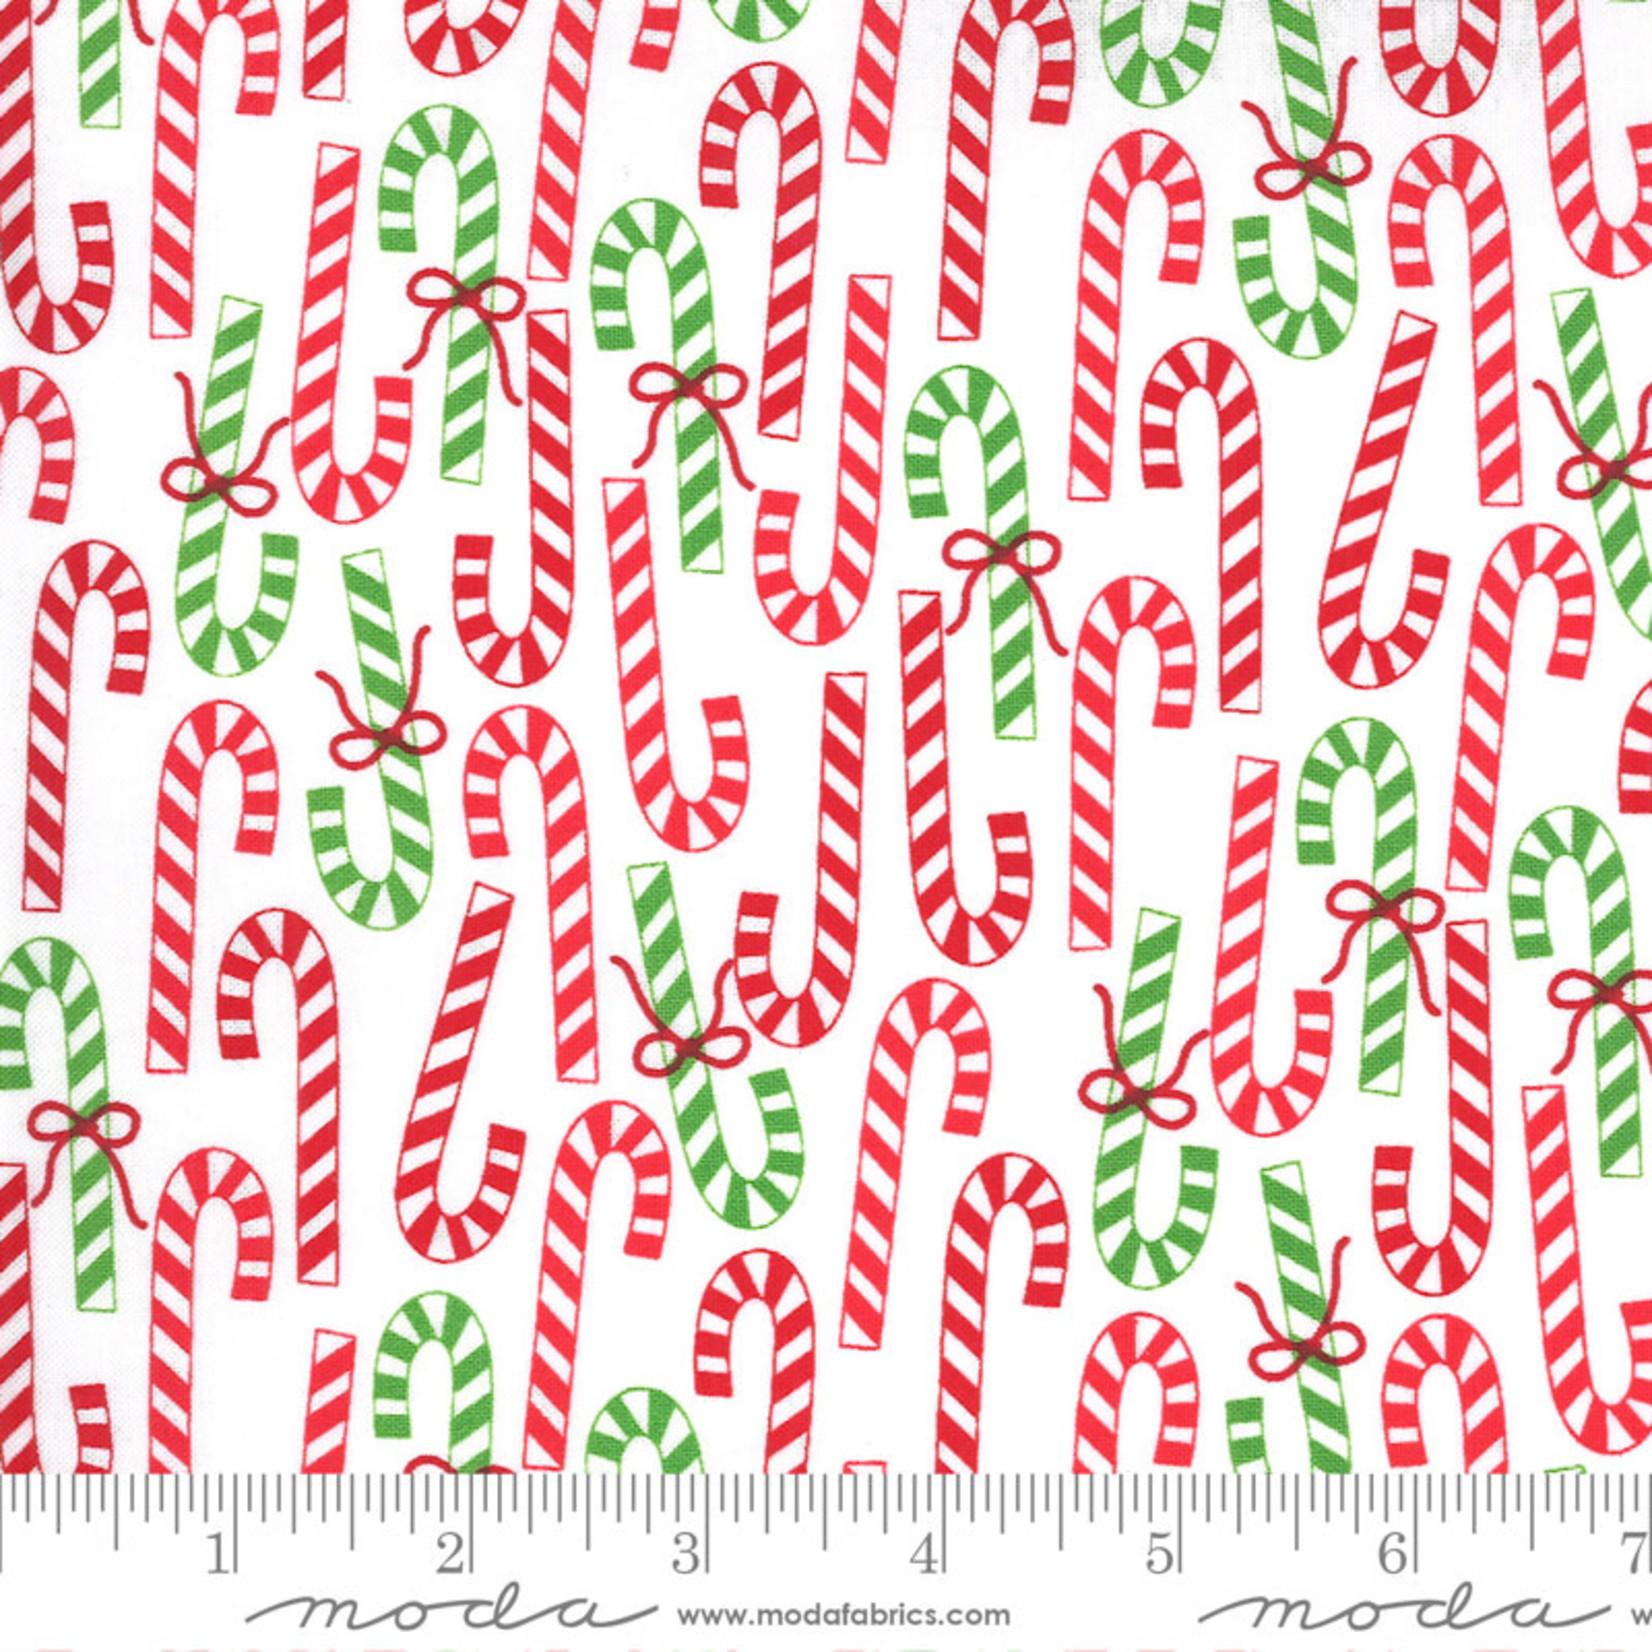 Me and My Sister Designs Merry and Bright, Merry Canes,  Winter White 22402 13 $0.20 per cm or $20/m